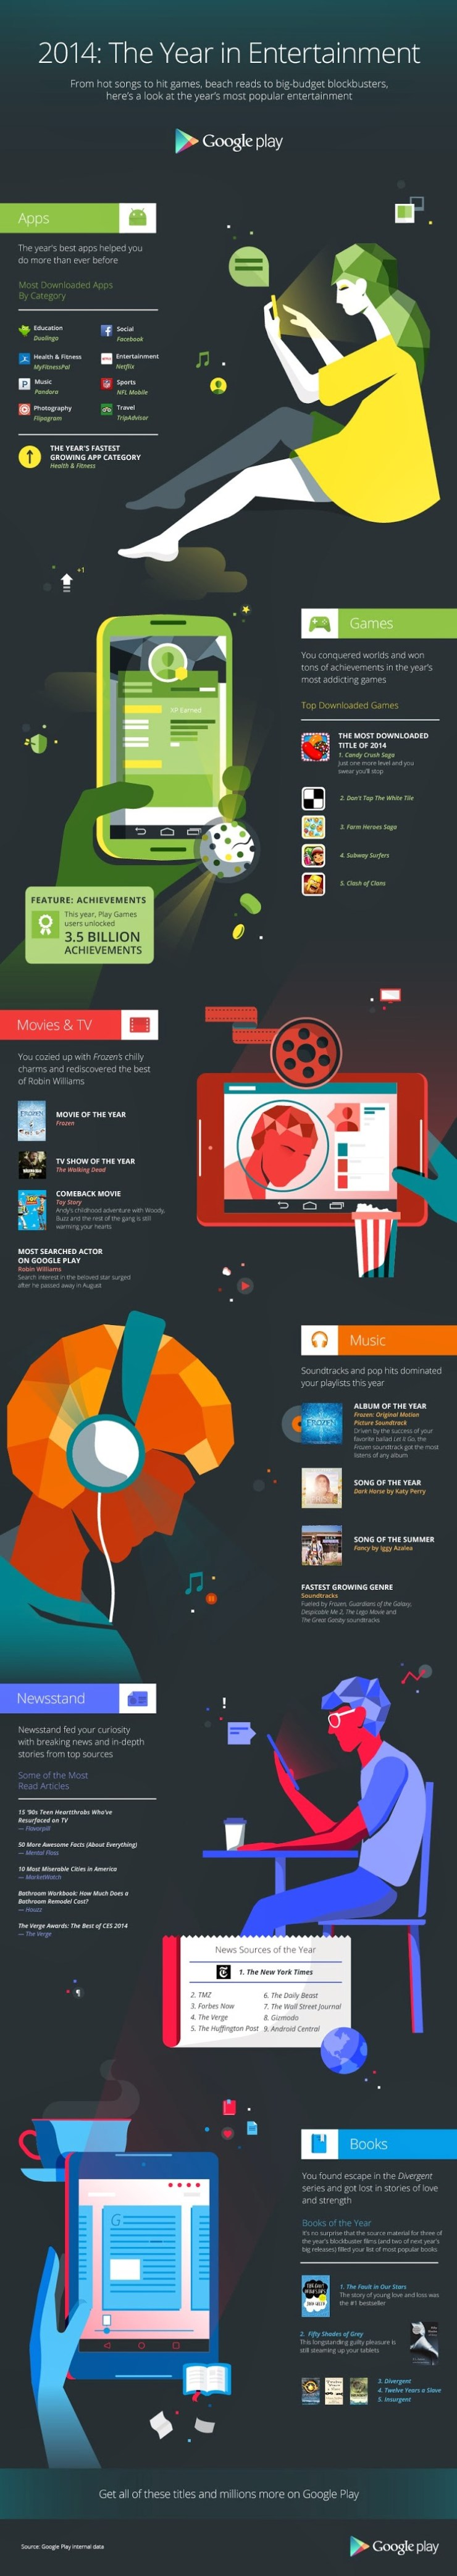 Google Play - End of Year Infographic - 2014 - FINAL